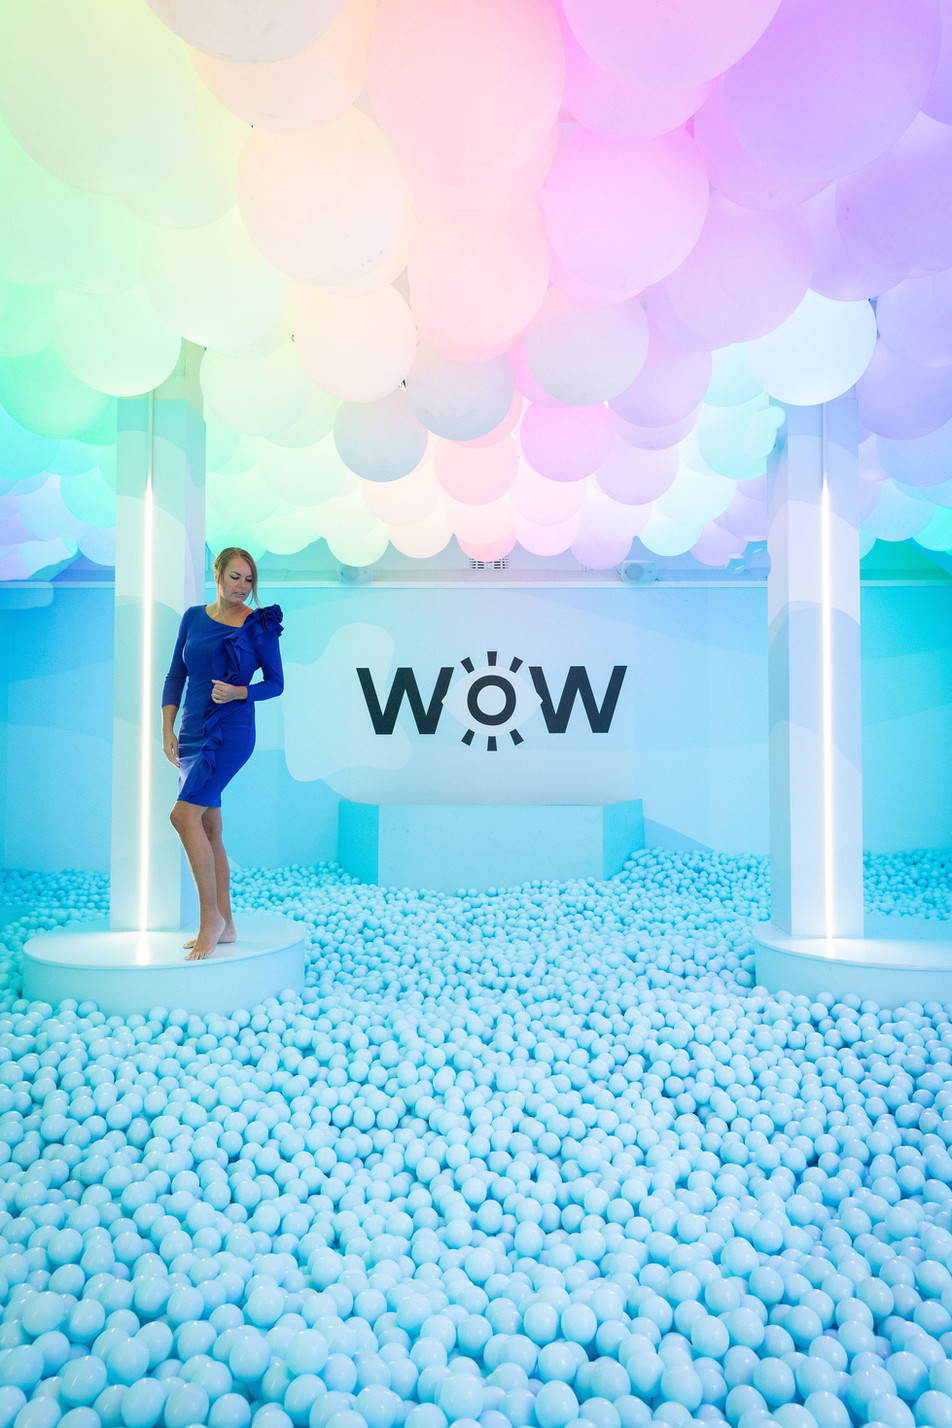 WONDR Experience - new Instagram-mable photo hotspot in Amsterdam